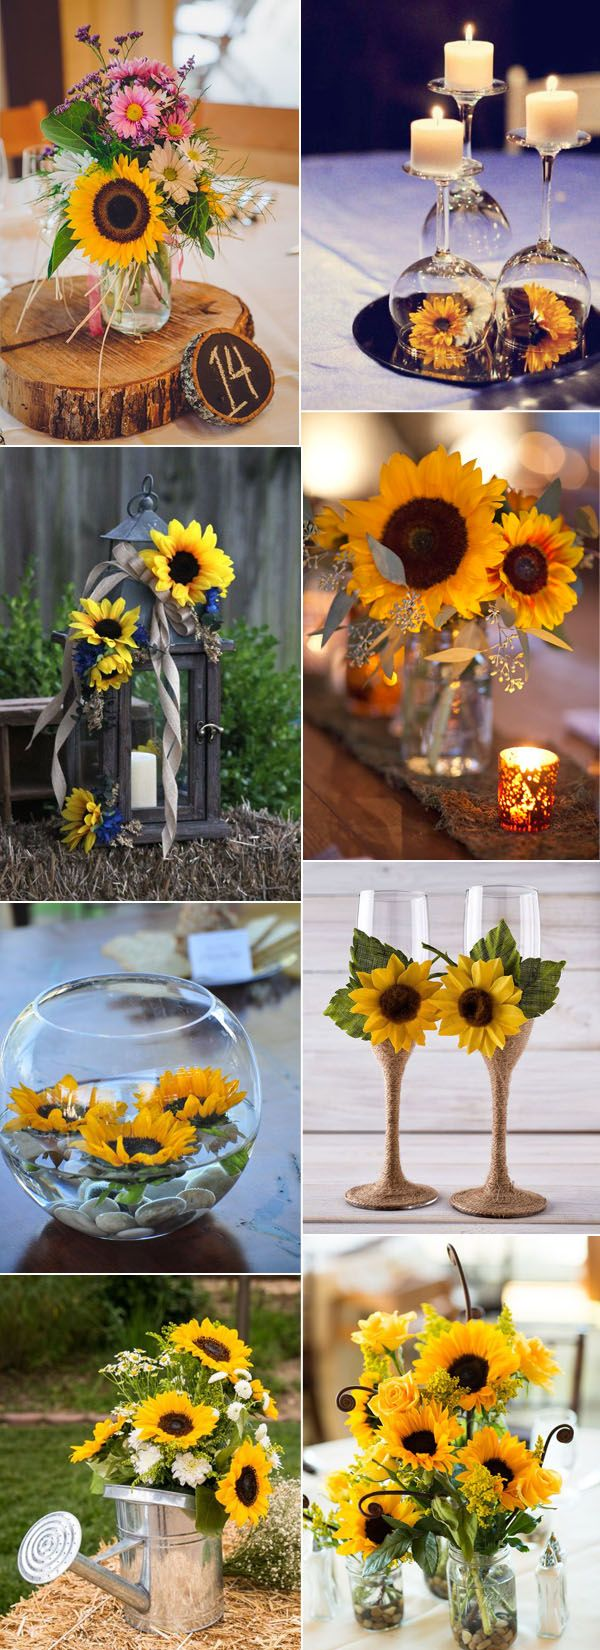 40+ Super Cool Ideas to Incorporate Sunflowers to Your